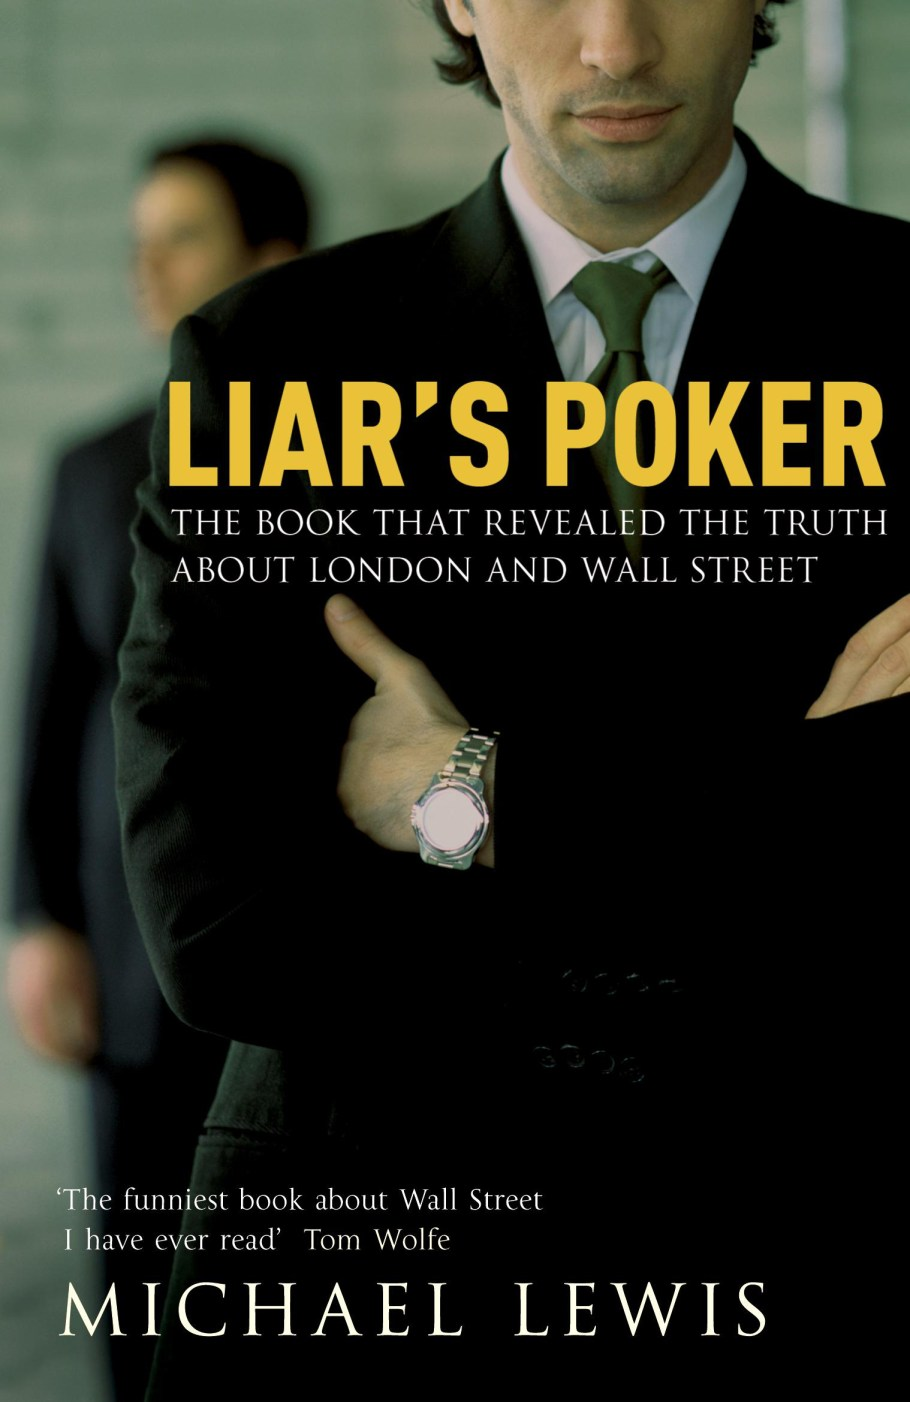 Liar's Poker: From the author of the Big Short by Michael Lewis - Books -  Hachette Australia